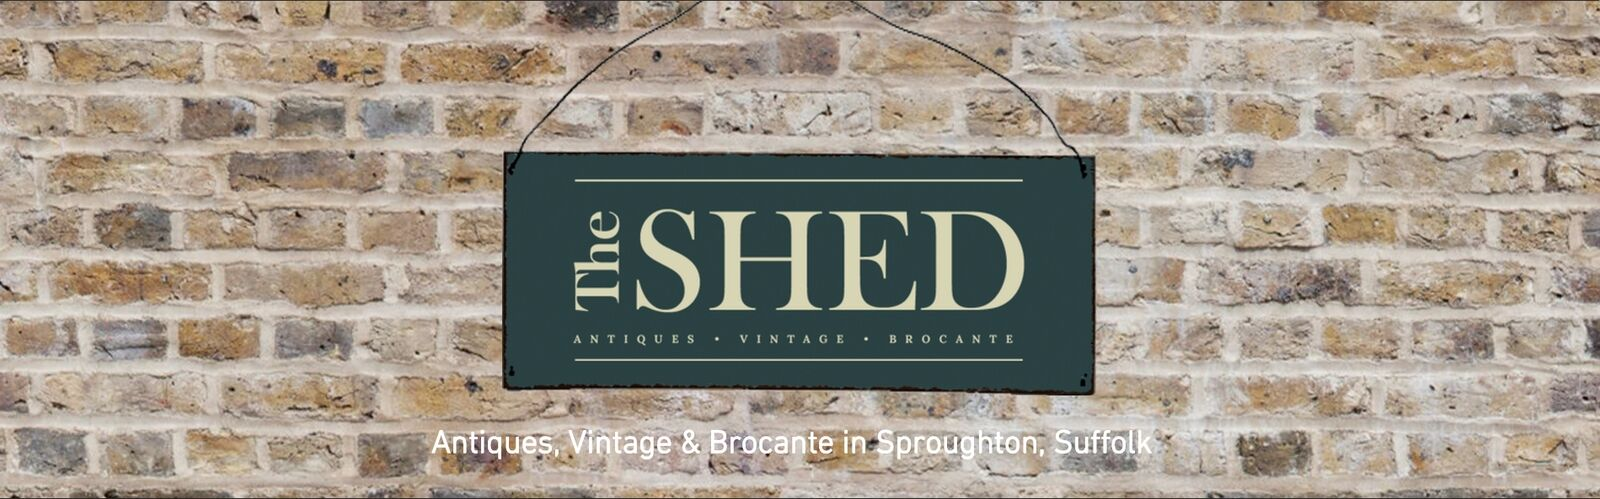 The SHED Suffolk